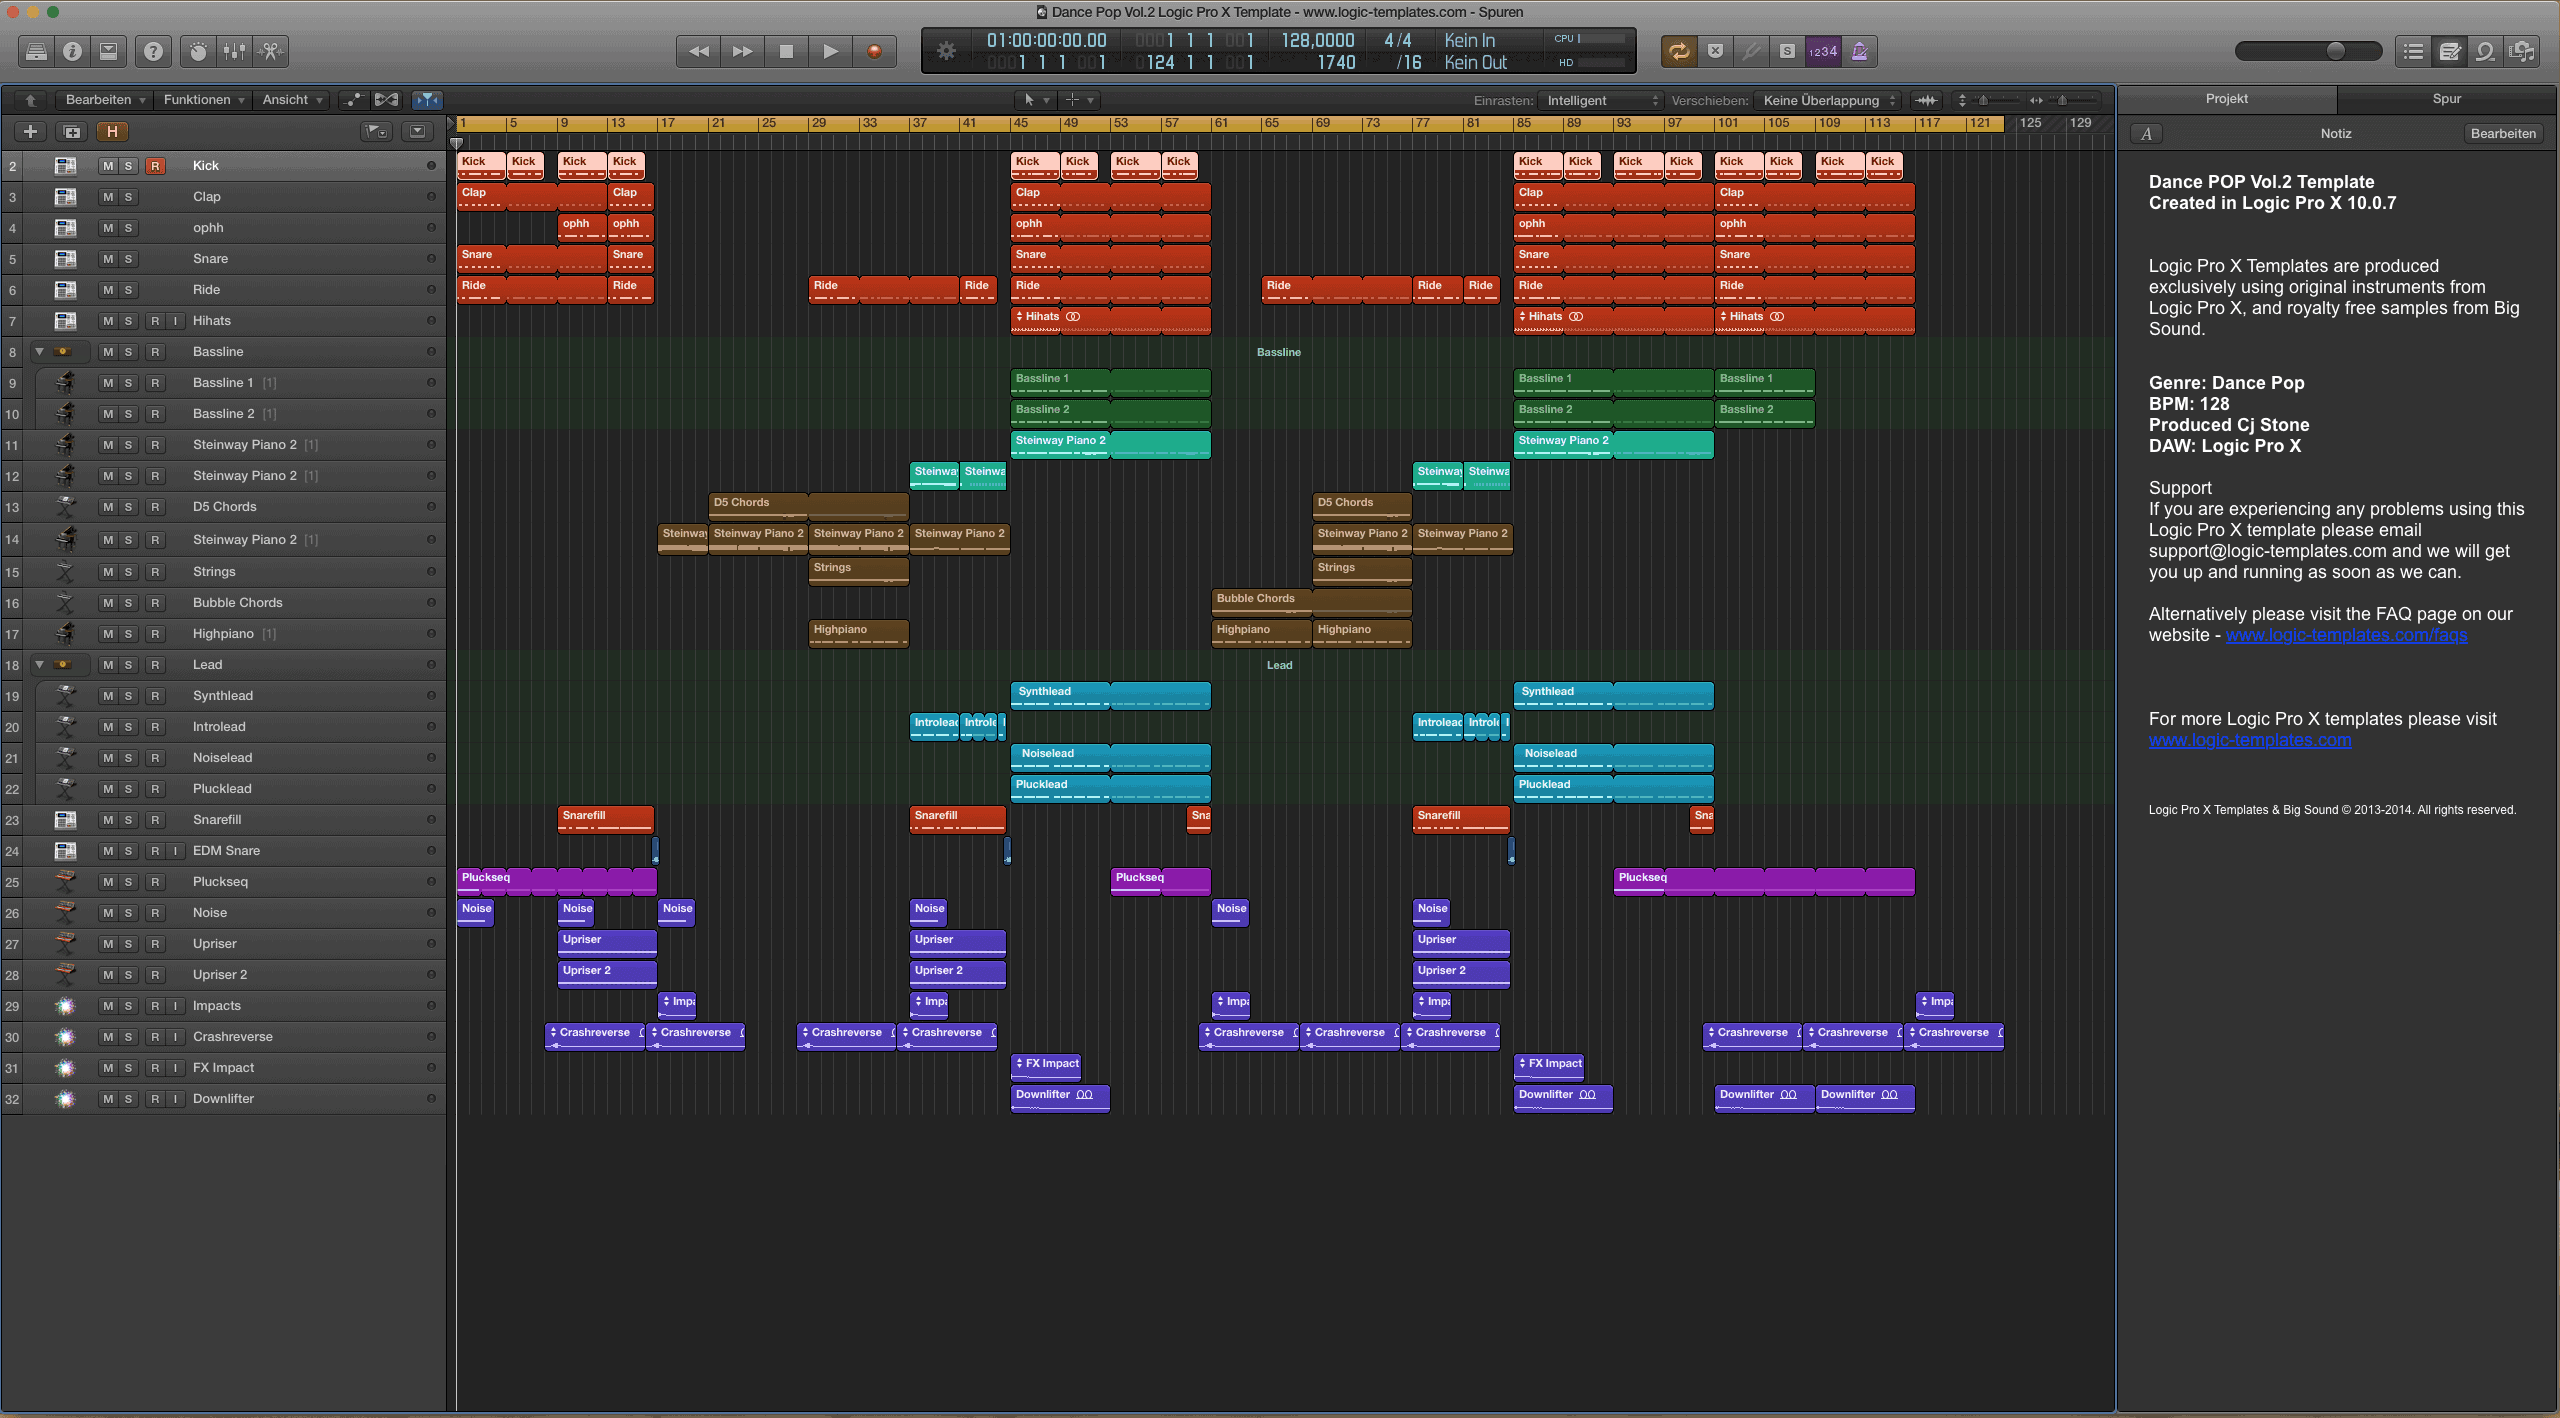 Dance Pop Vol.2 Logic Pro X Template